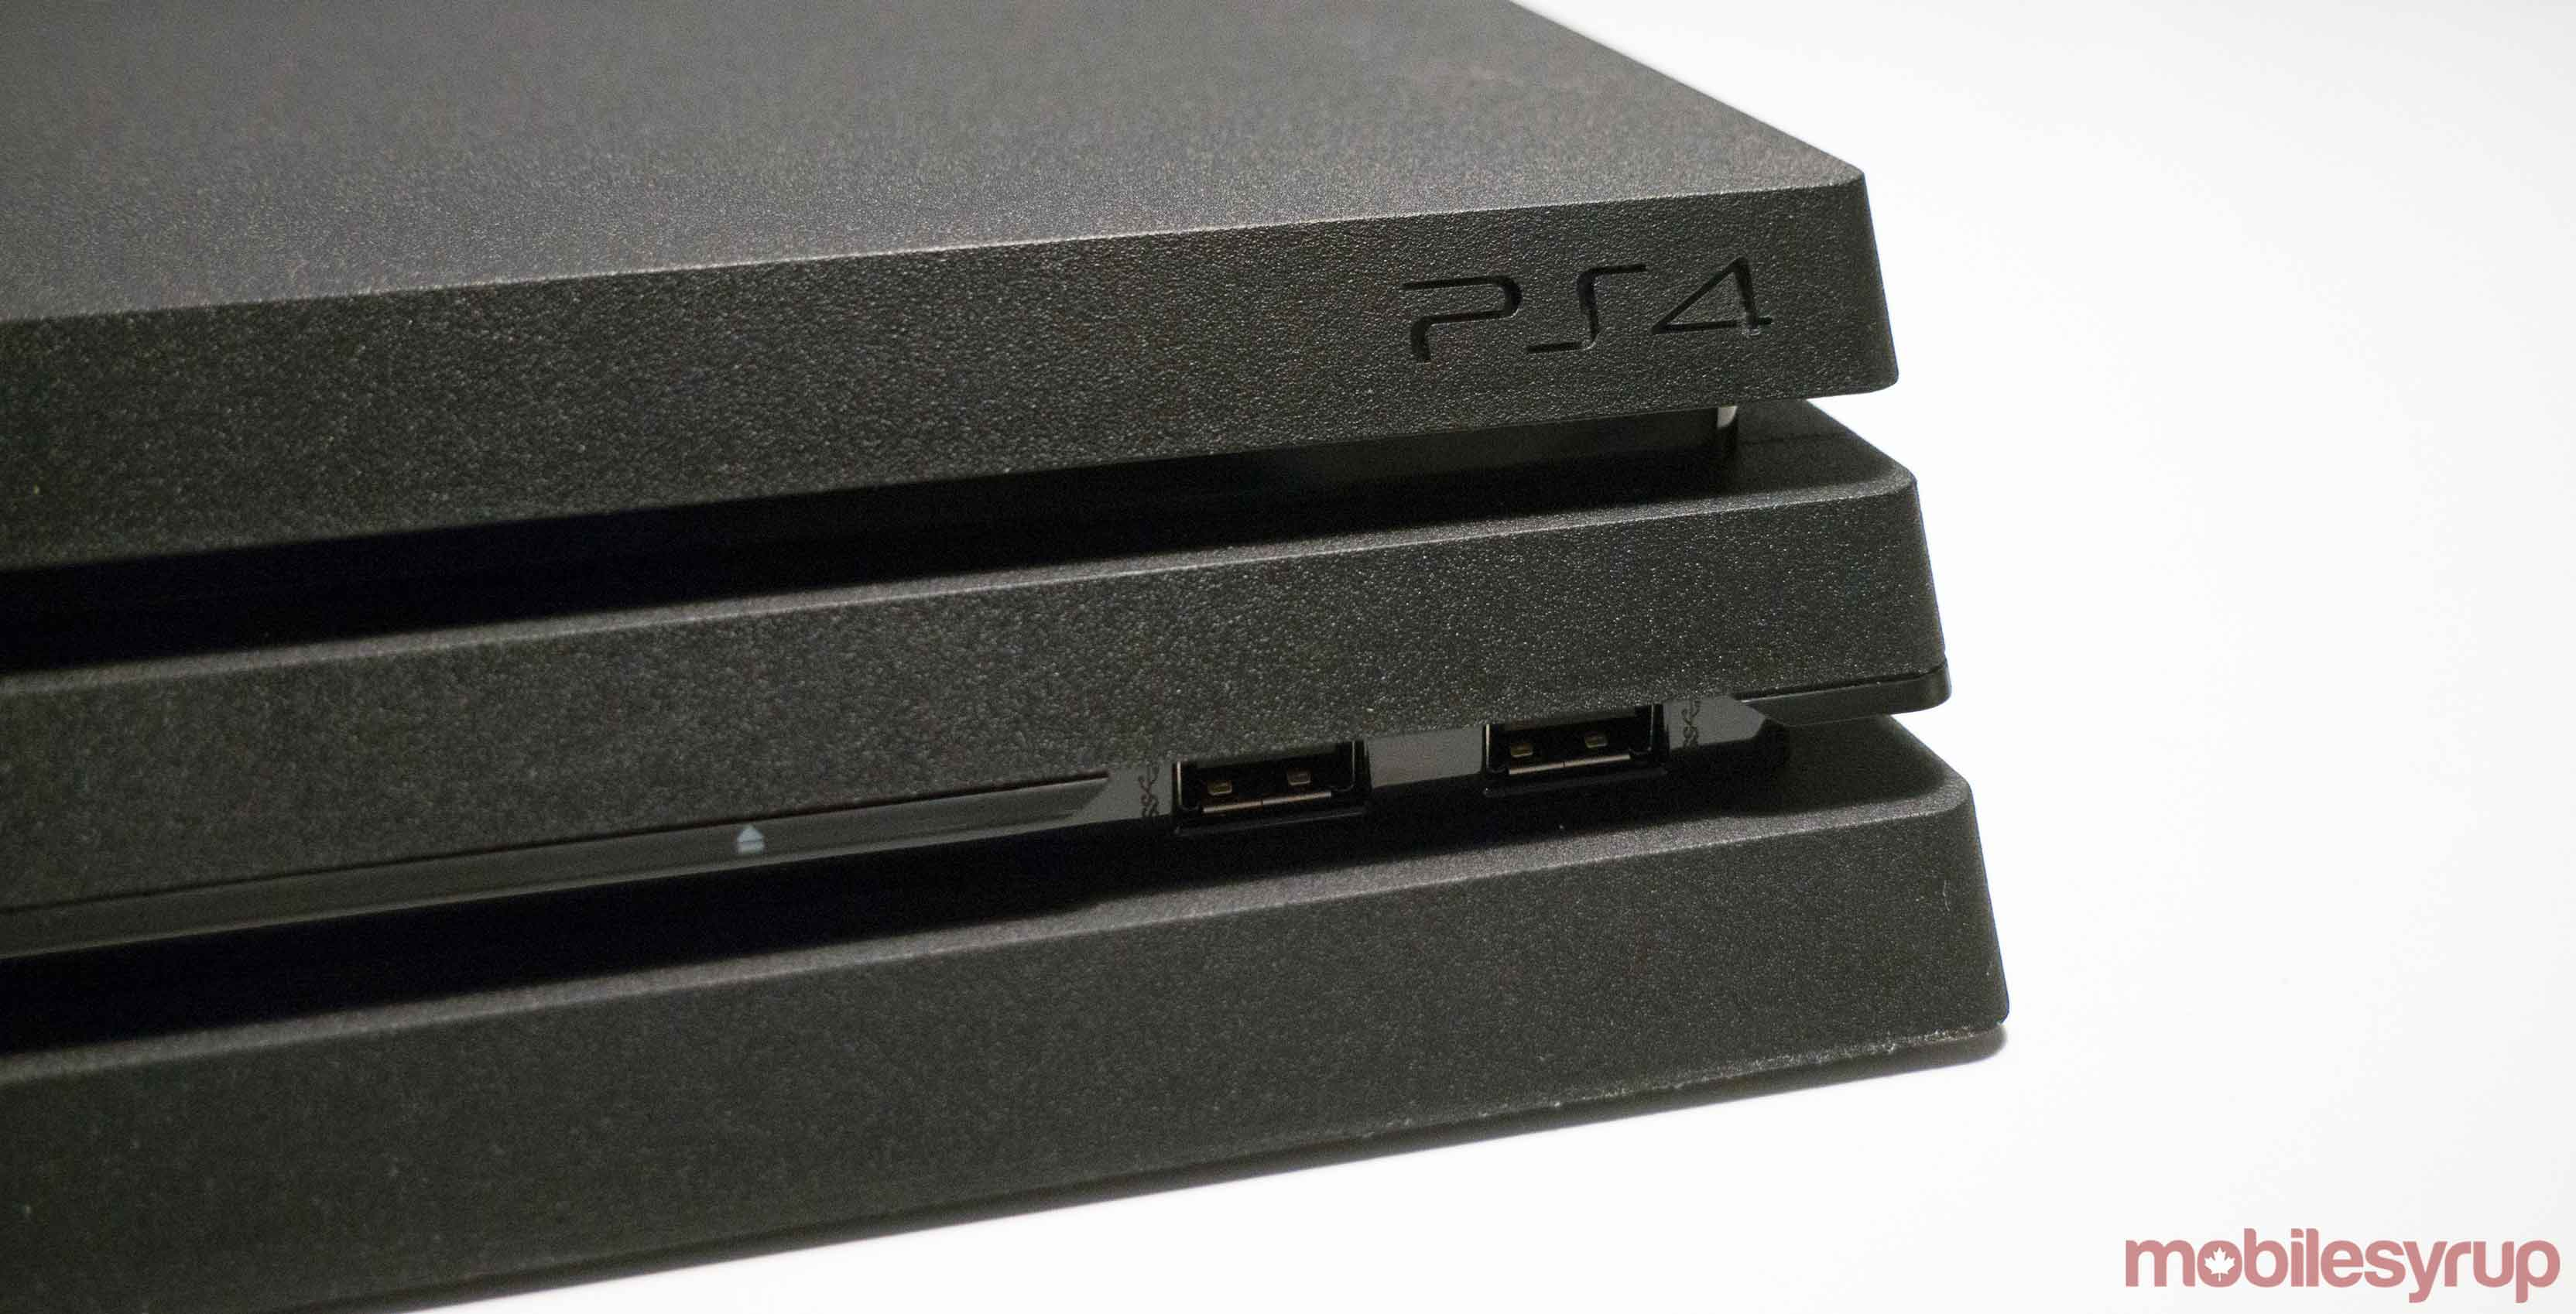 PlayStation 5 Likely Won't Release Until 2020